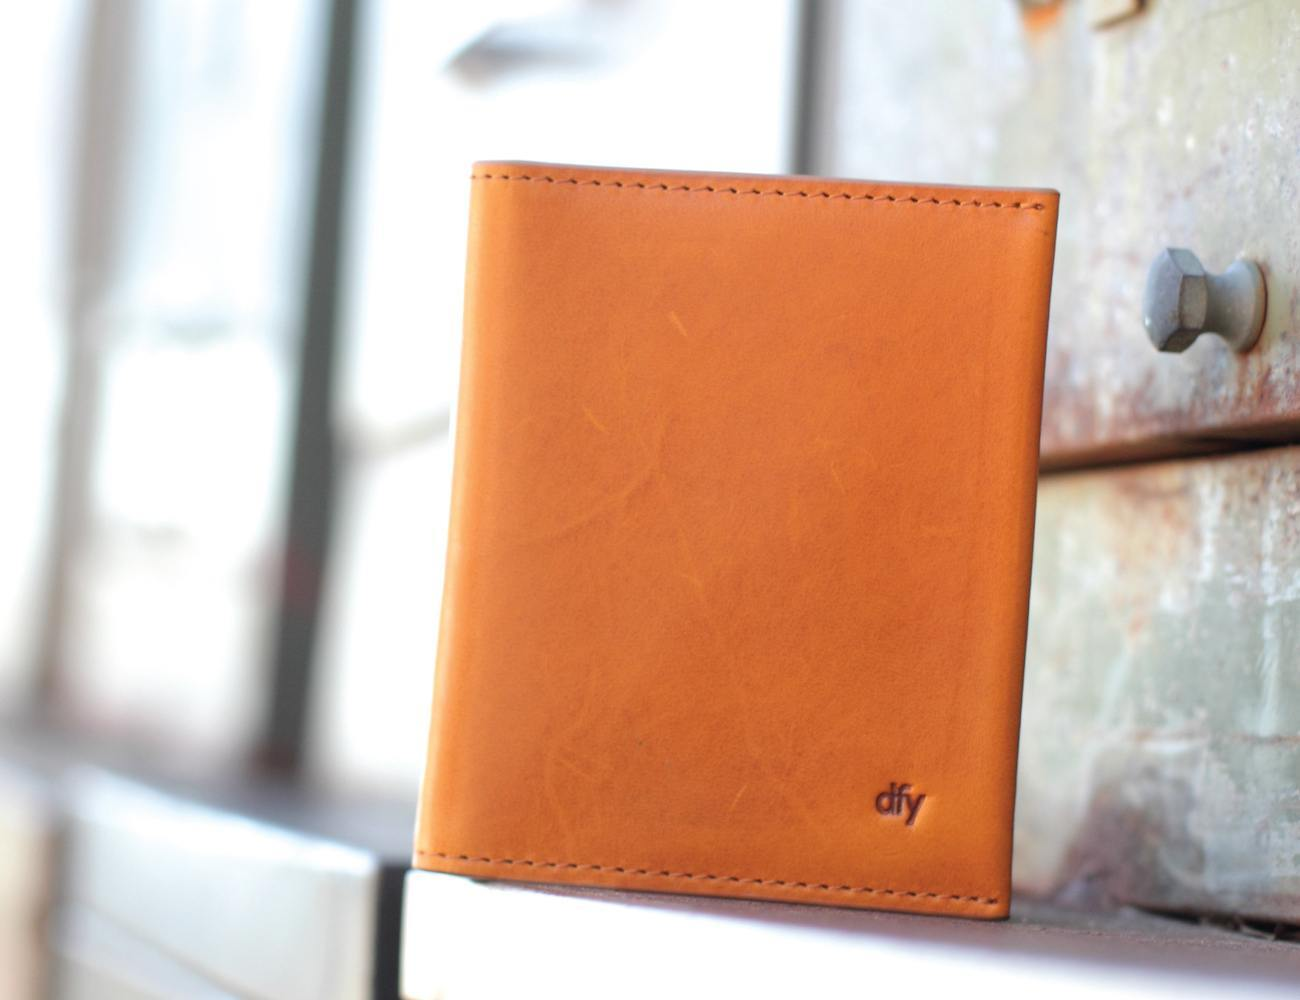 The dfy360 RFID-Blocking Wallet Protects Your Money in Style